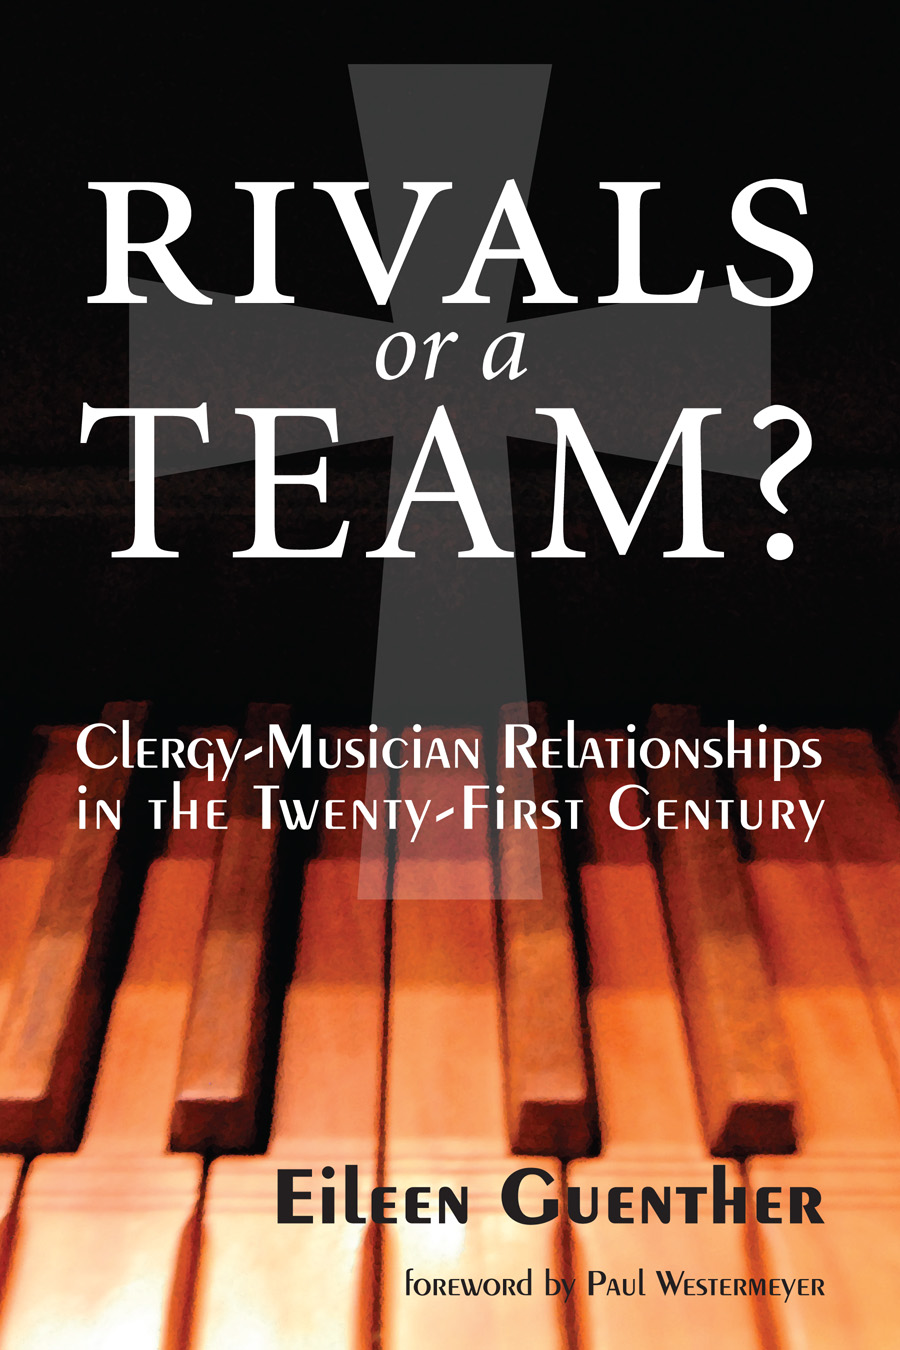 Rivals or a Team? Clergy-Musician Relationships in the Twenty-First Century